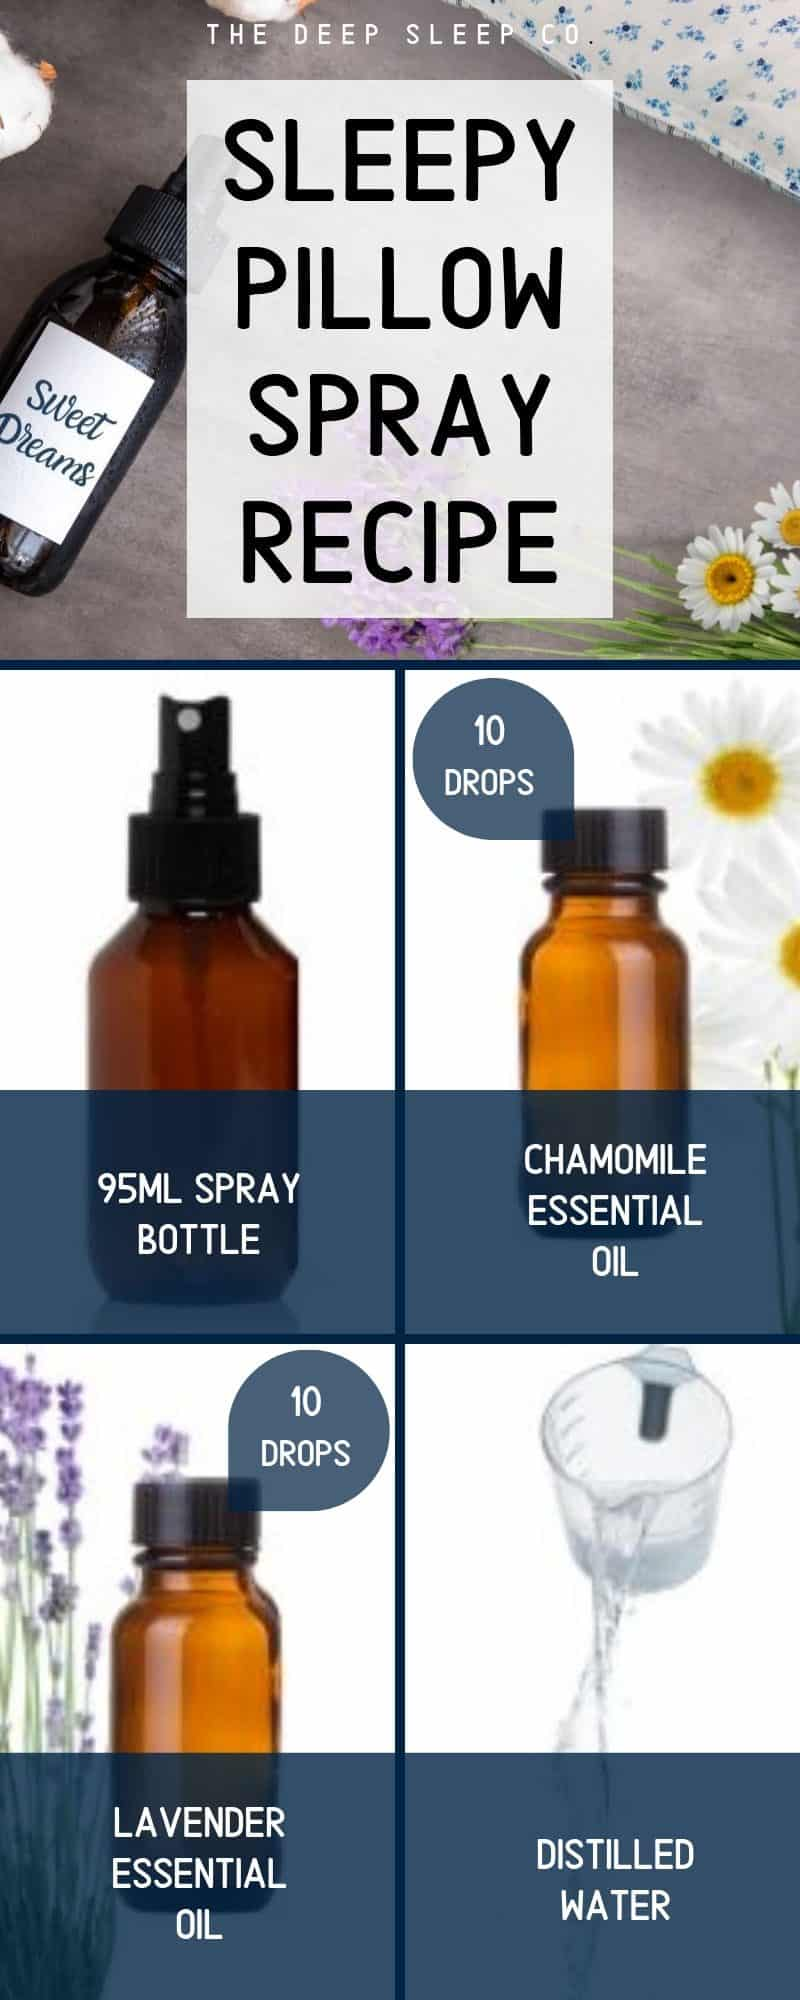 Sleepy pillow spray recipe